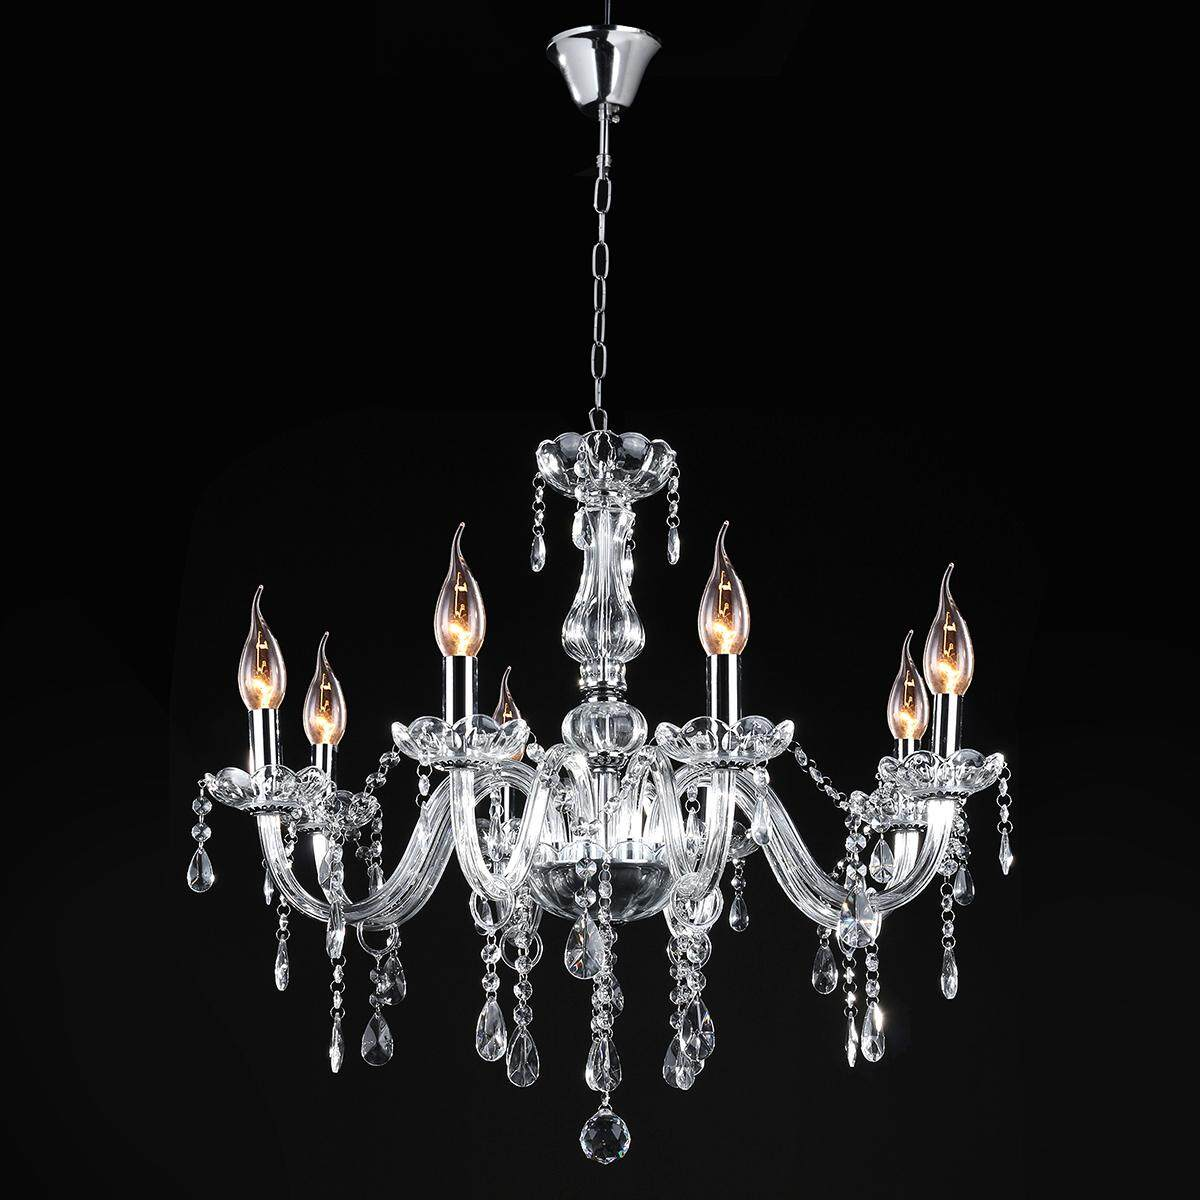 E12 8 Heads Clear Crystal Chandelier European Style Pendant Ceiling Light Modern Chandeliers Crystal Light Fixture Dining Room Bedroom Hanging Lamp, AC110-240V For Hall Restaurant Corridor Balcony Entrance Decoration